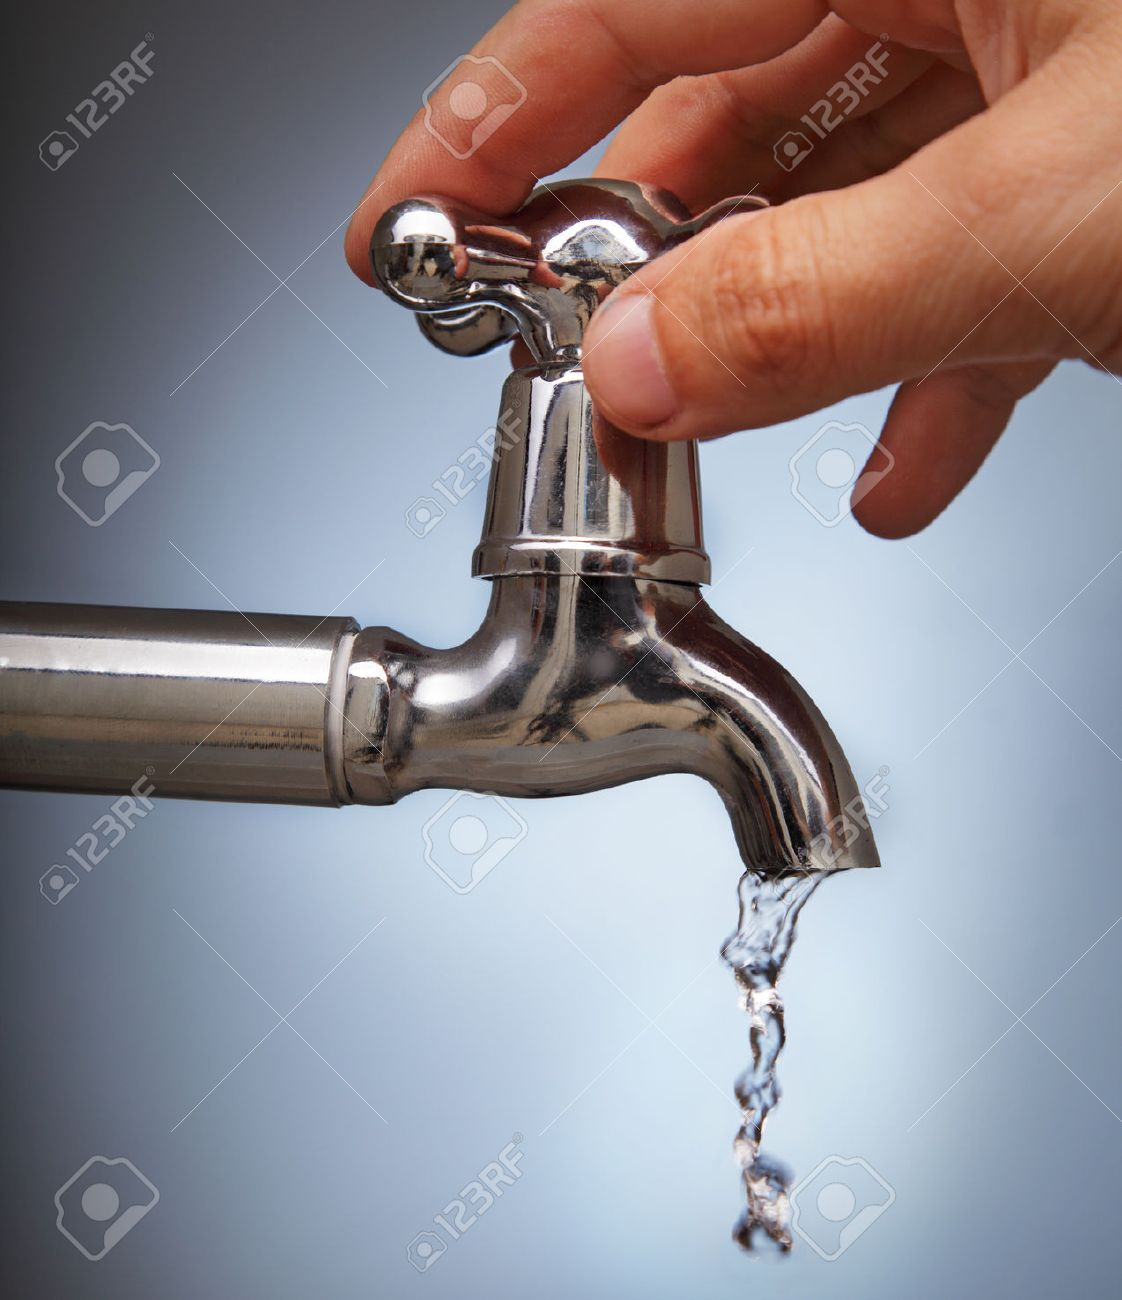 Water Pipe Stock Photos. Royalty Free Business Images